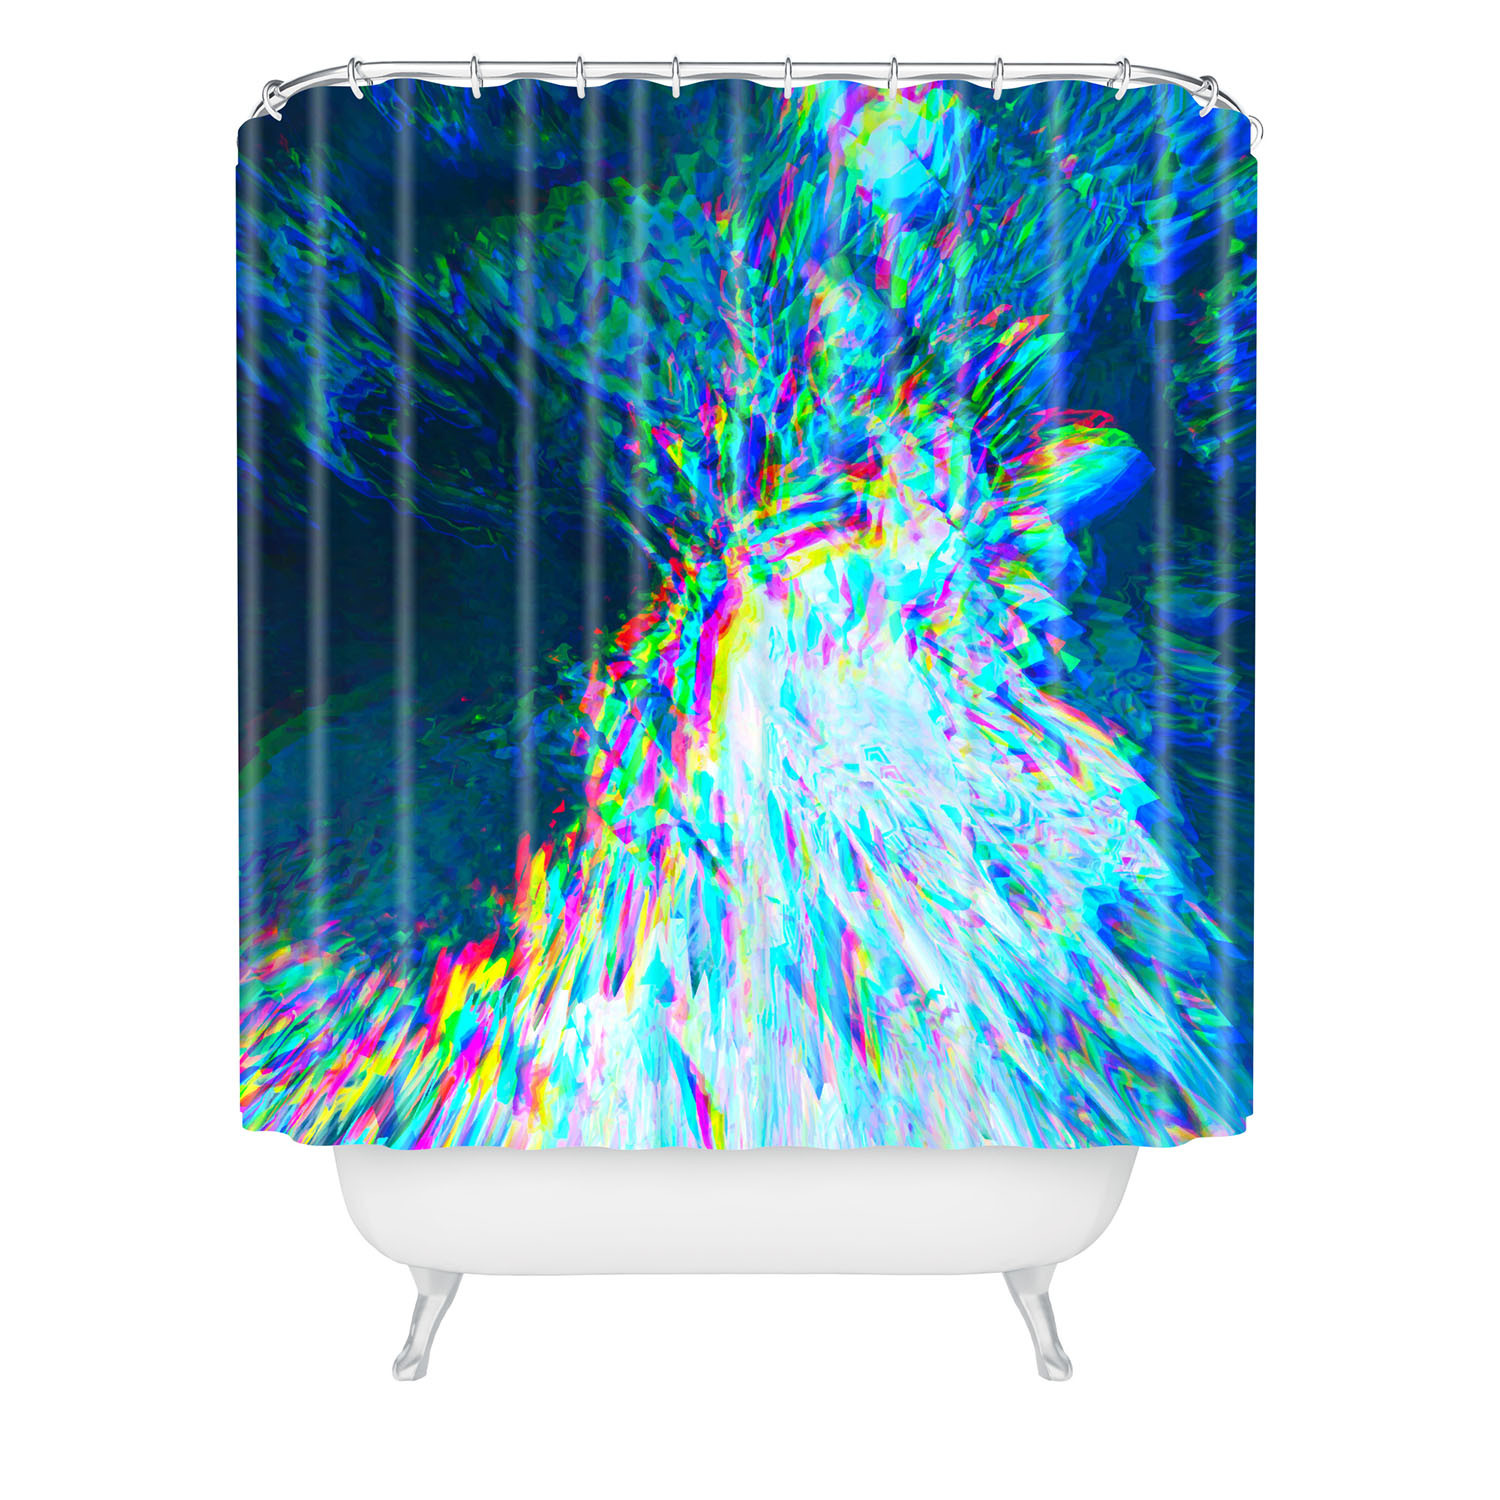 LCD River Shower Curtain